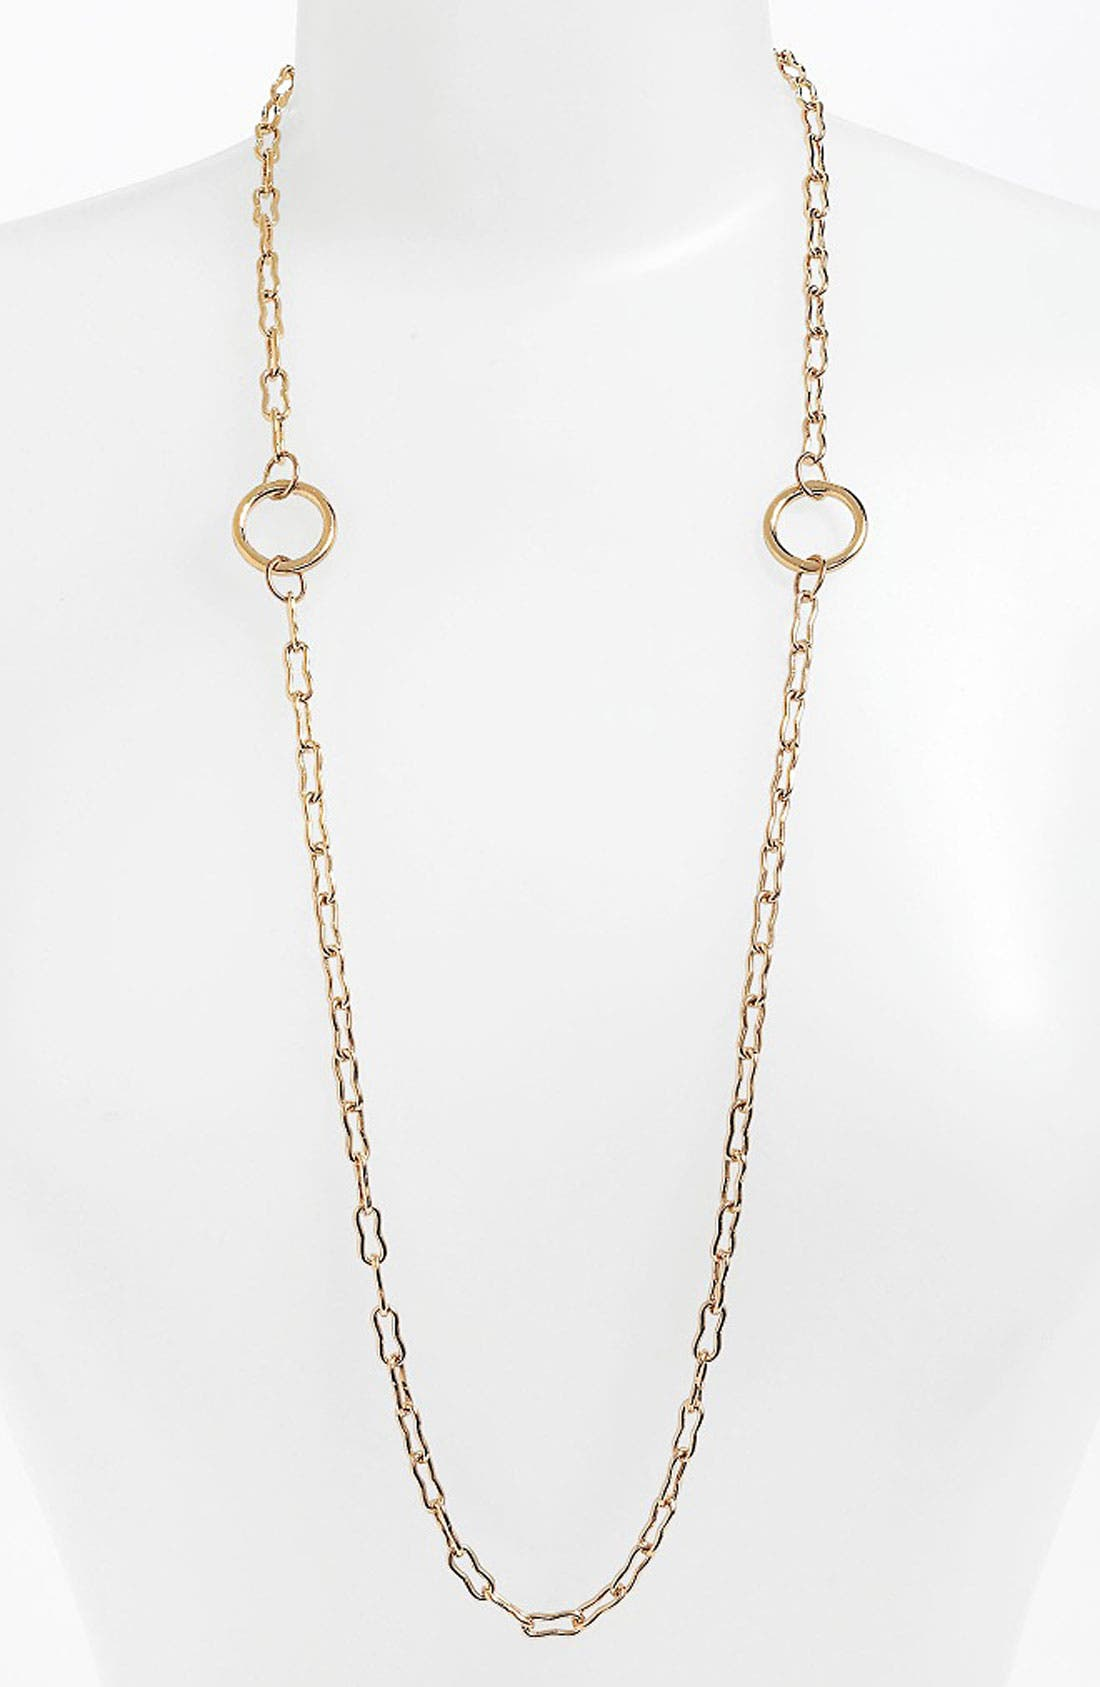 Main Image - Kelly Wearstler Bent Link Ring Necklace